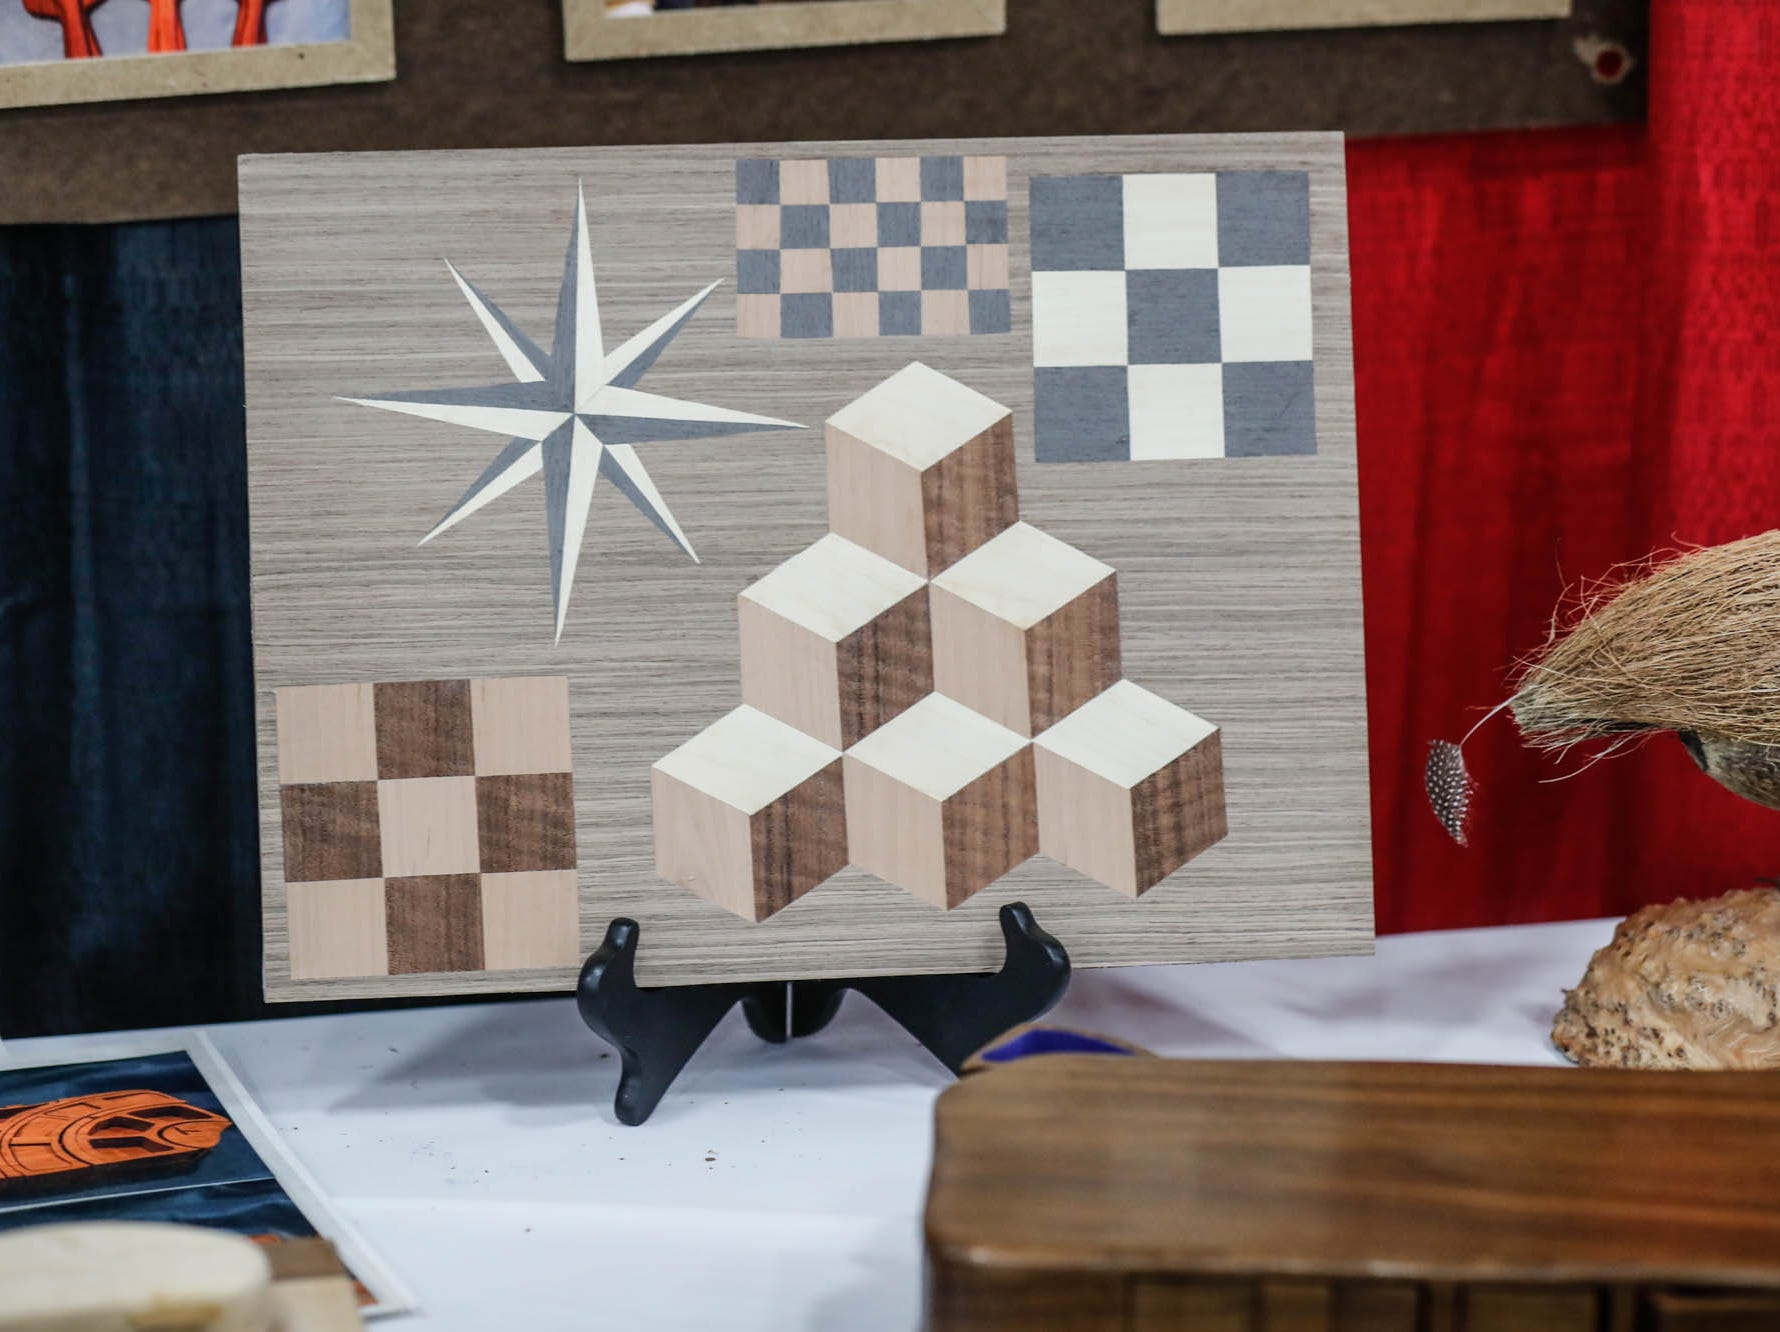 Hand made items are on display in the Women's Woodworking Guild of Indiana booth during a Wood Working Show at the Indiana State Fairgrounds in Indianapolis on Sunday, Feb. 3, 2019.